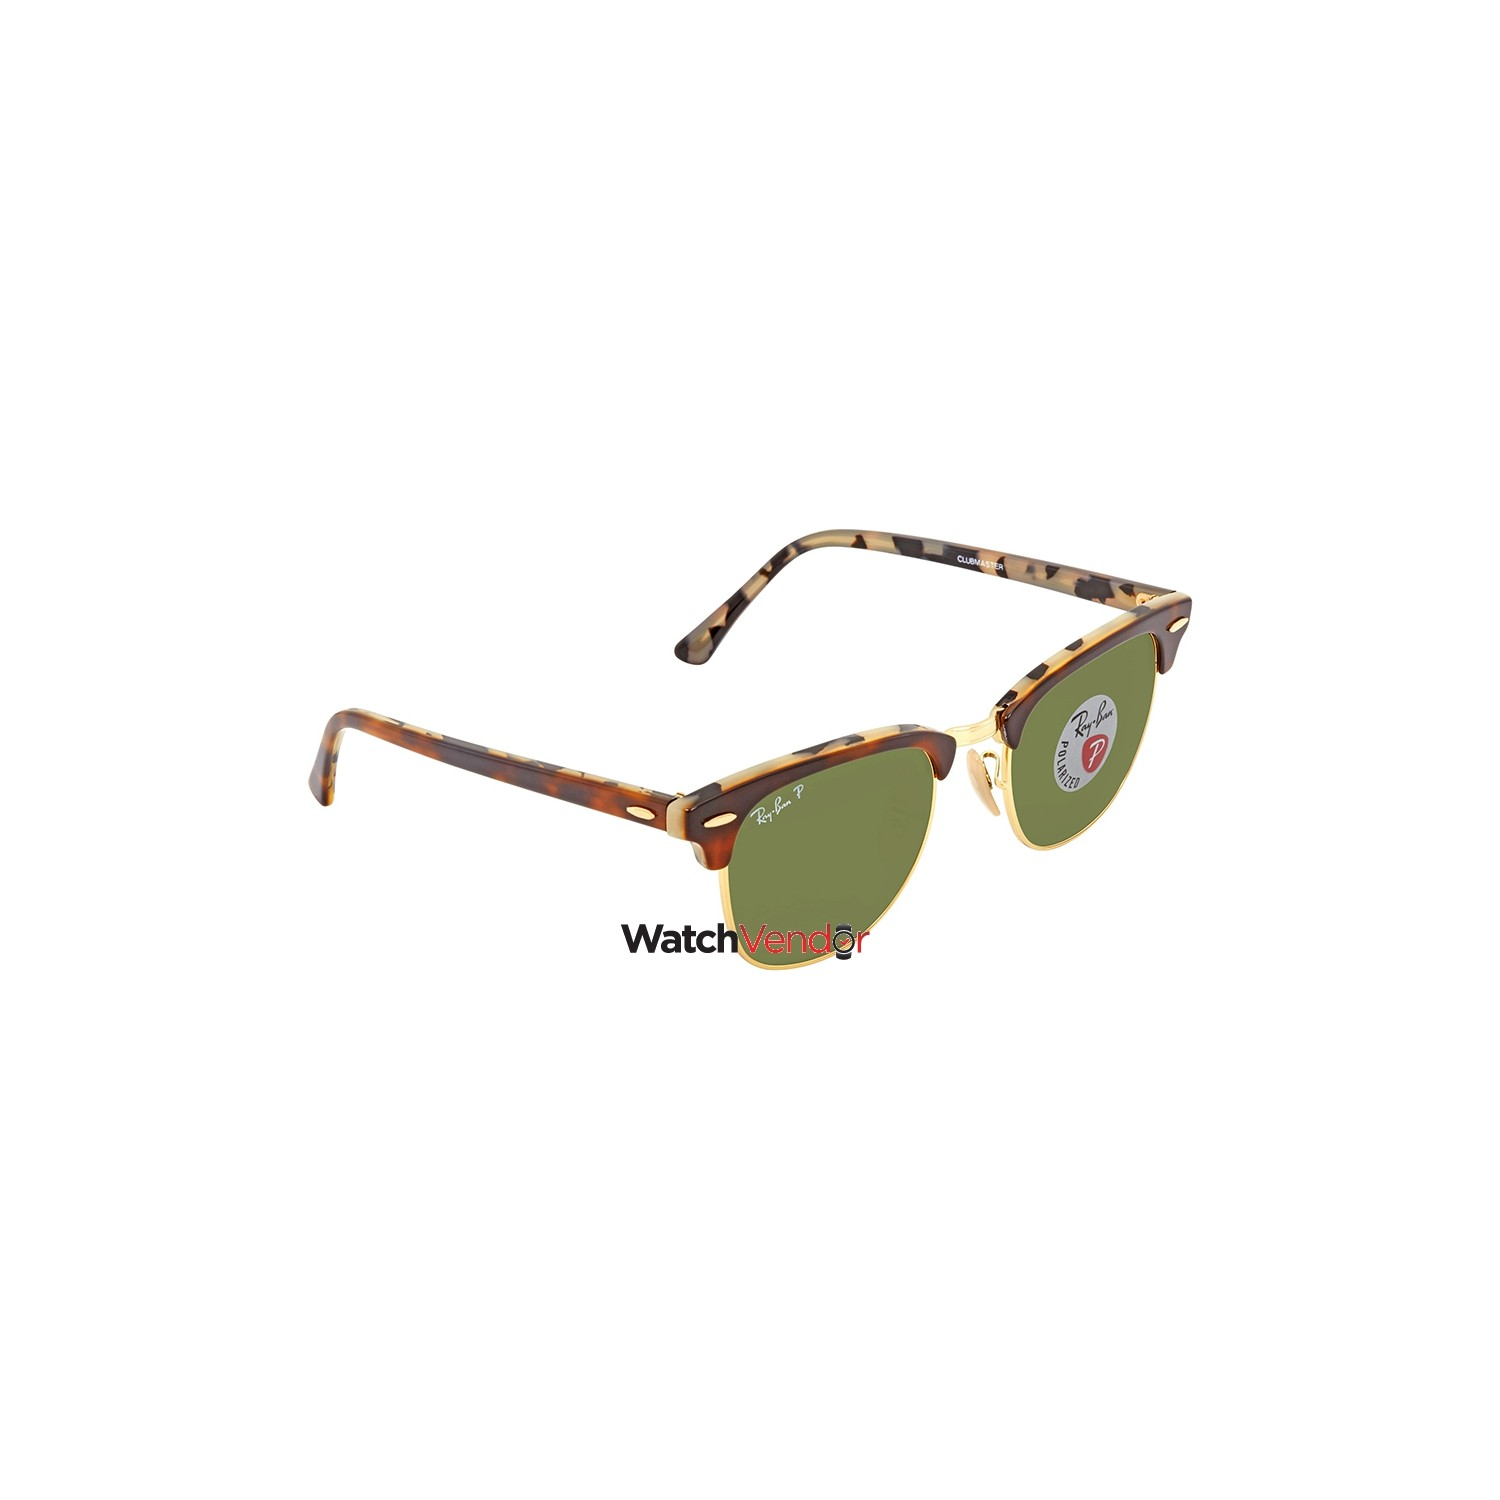 85c1e89497f ... greece ray ban clubmaster gren square sunglasses rb3016 w3375e 49  sunglasses best buy canada 66f4d 08fb0 ...